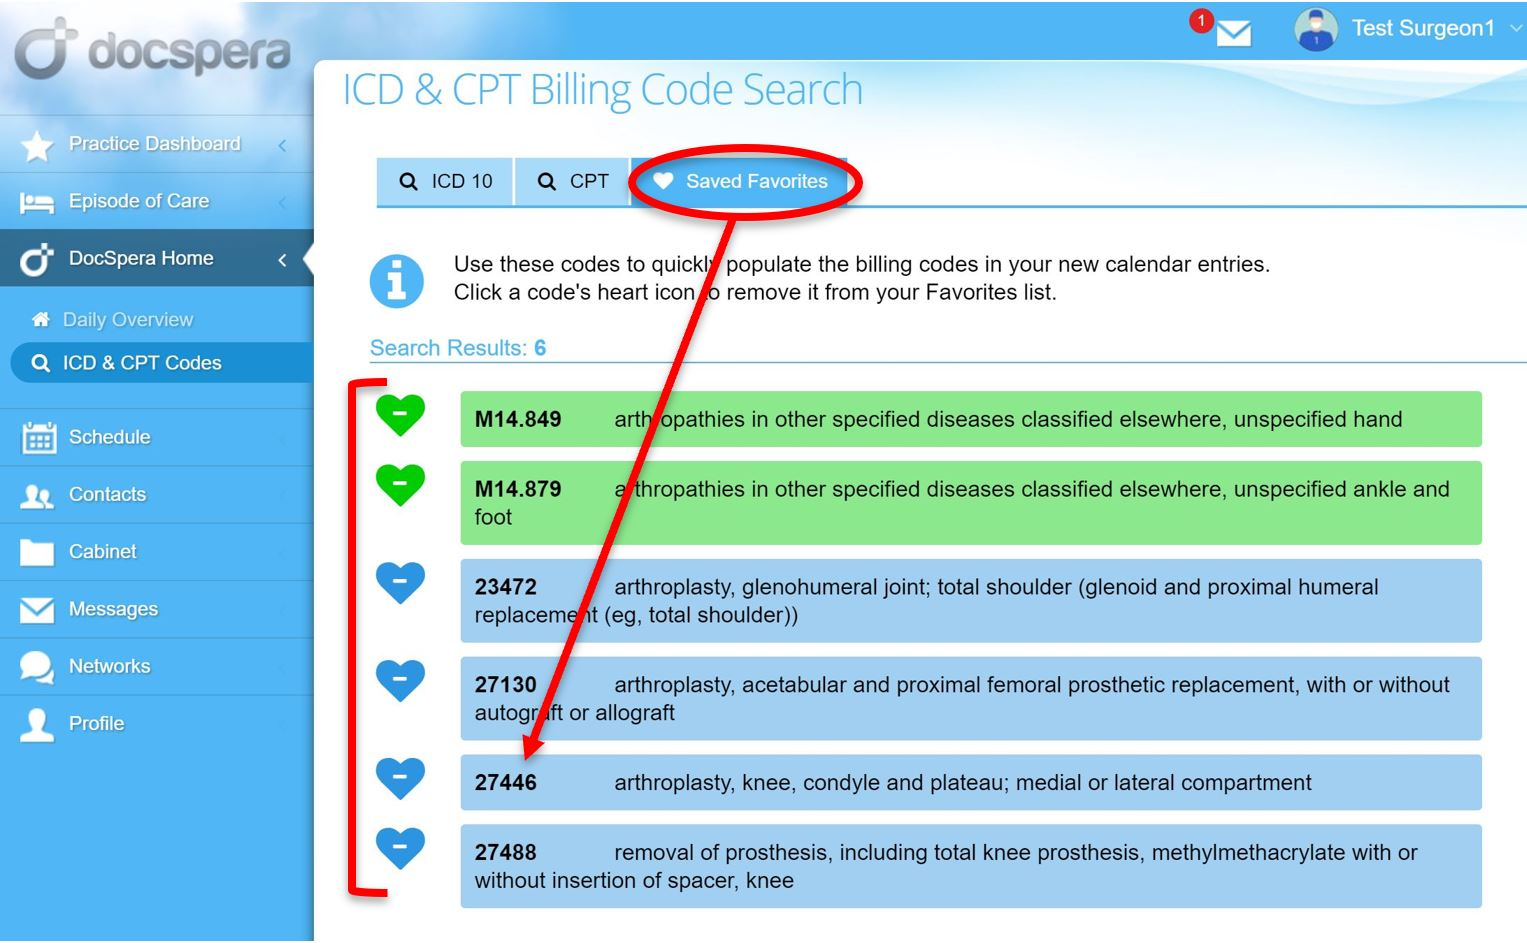 How_Do_I_Add_ICD_CPT_Codes_to_My_Favorites_List_2.JPG